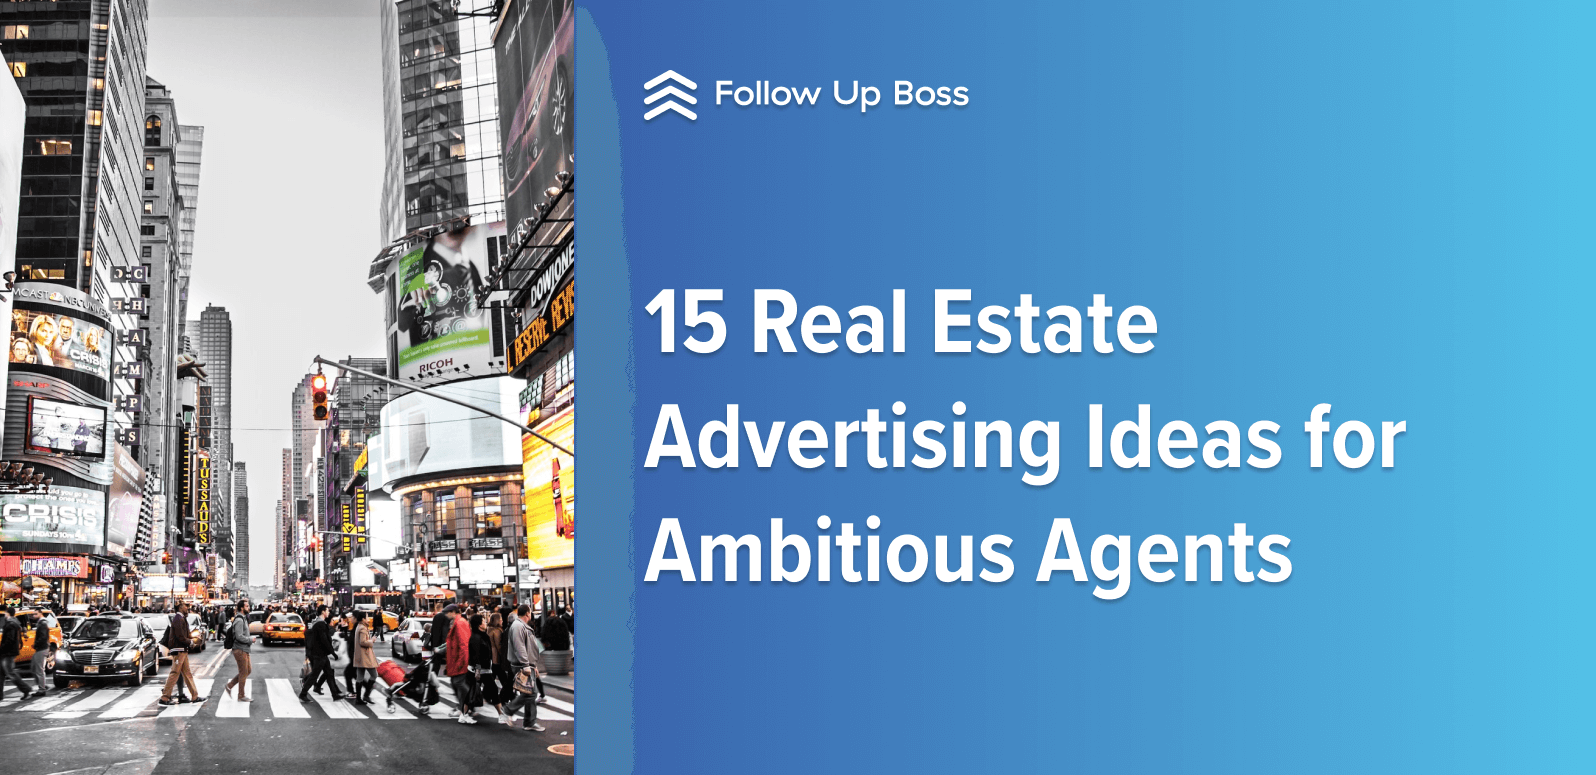 15 Real Estate Advertising Ideas for Ambitious Agents